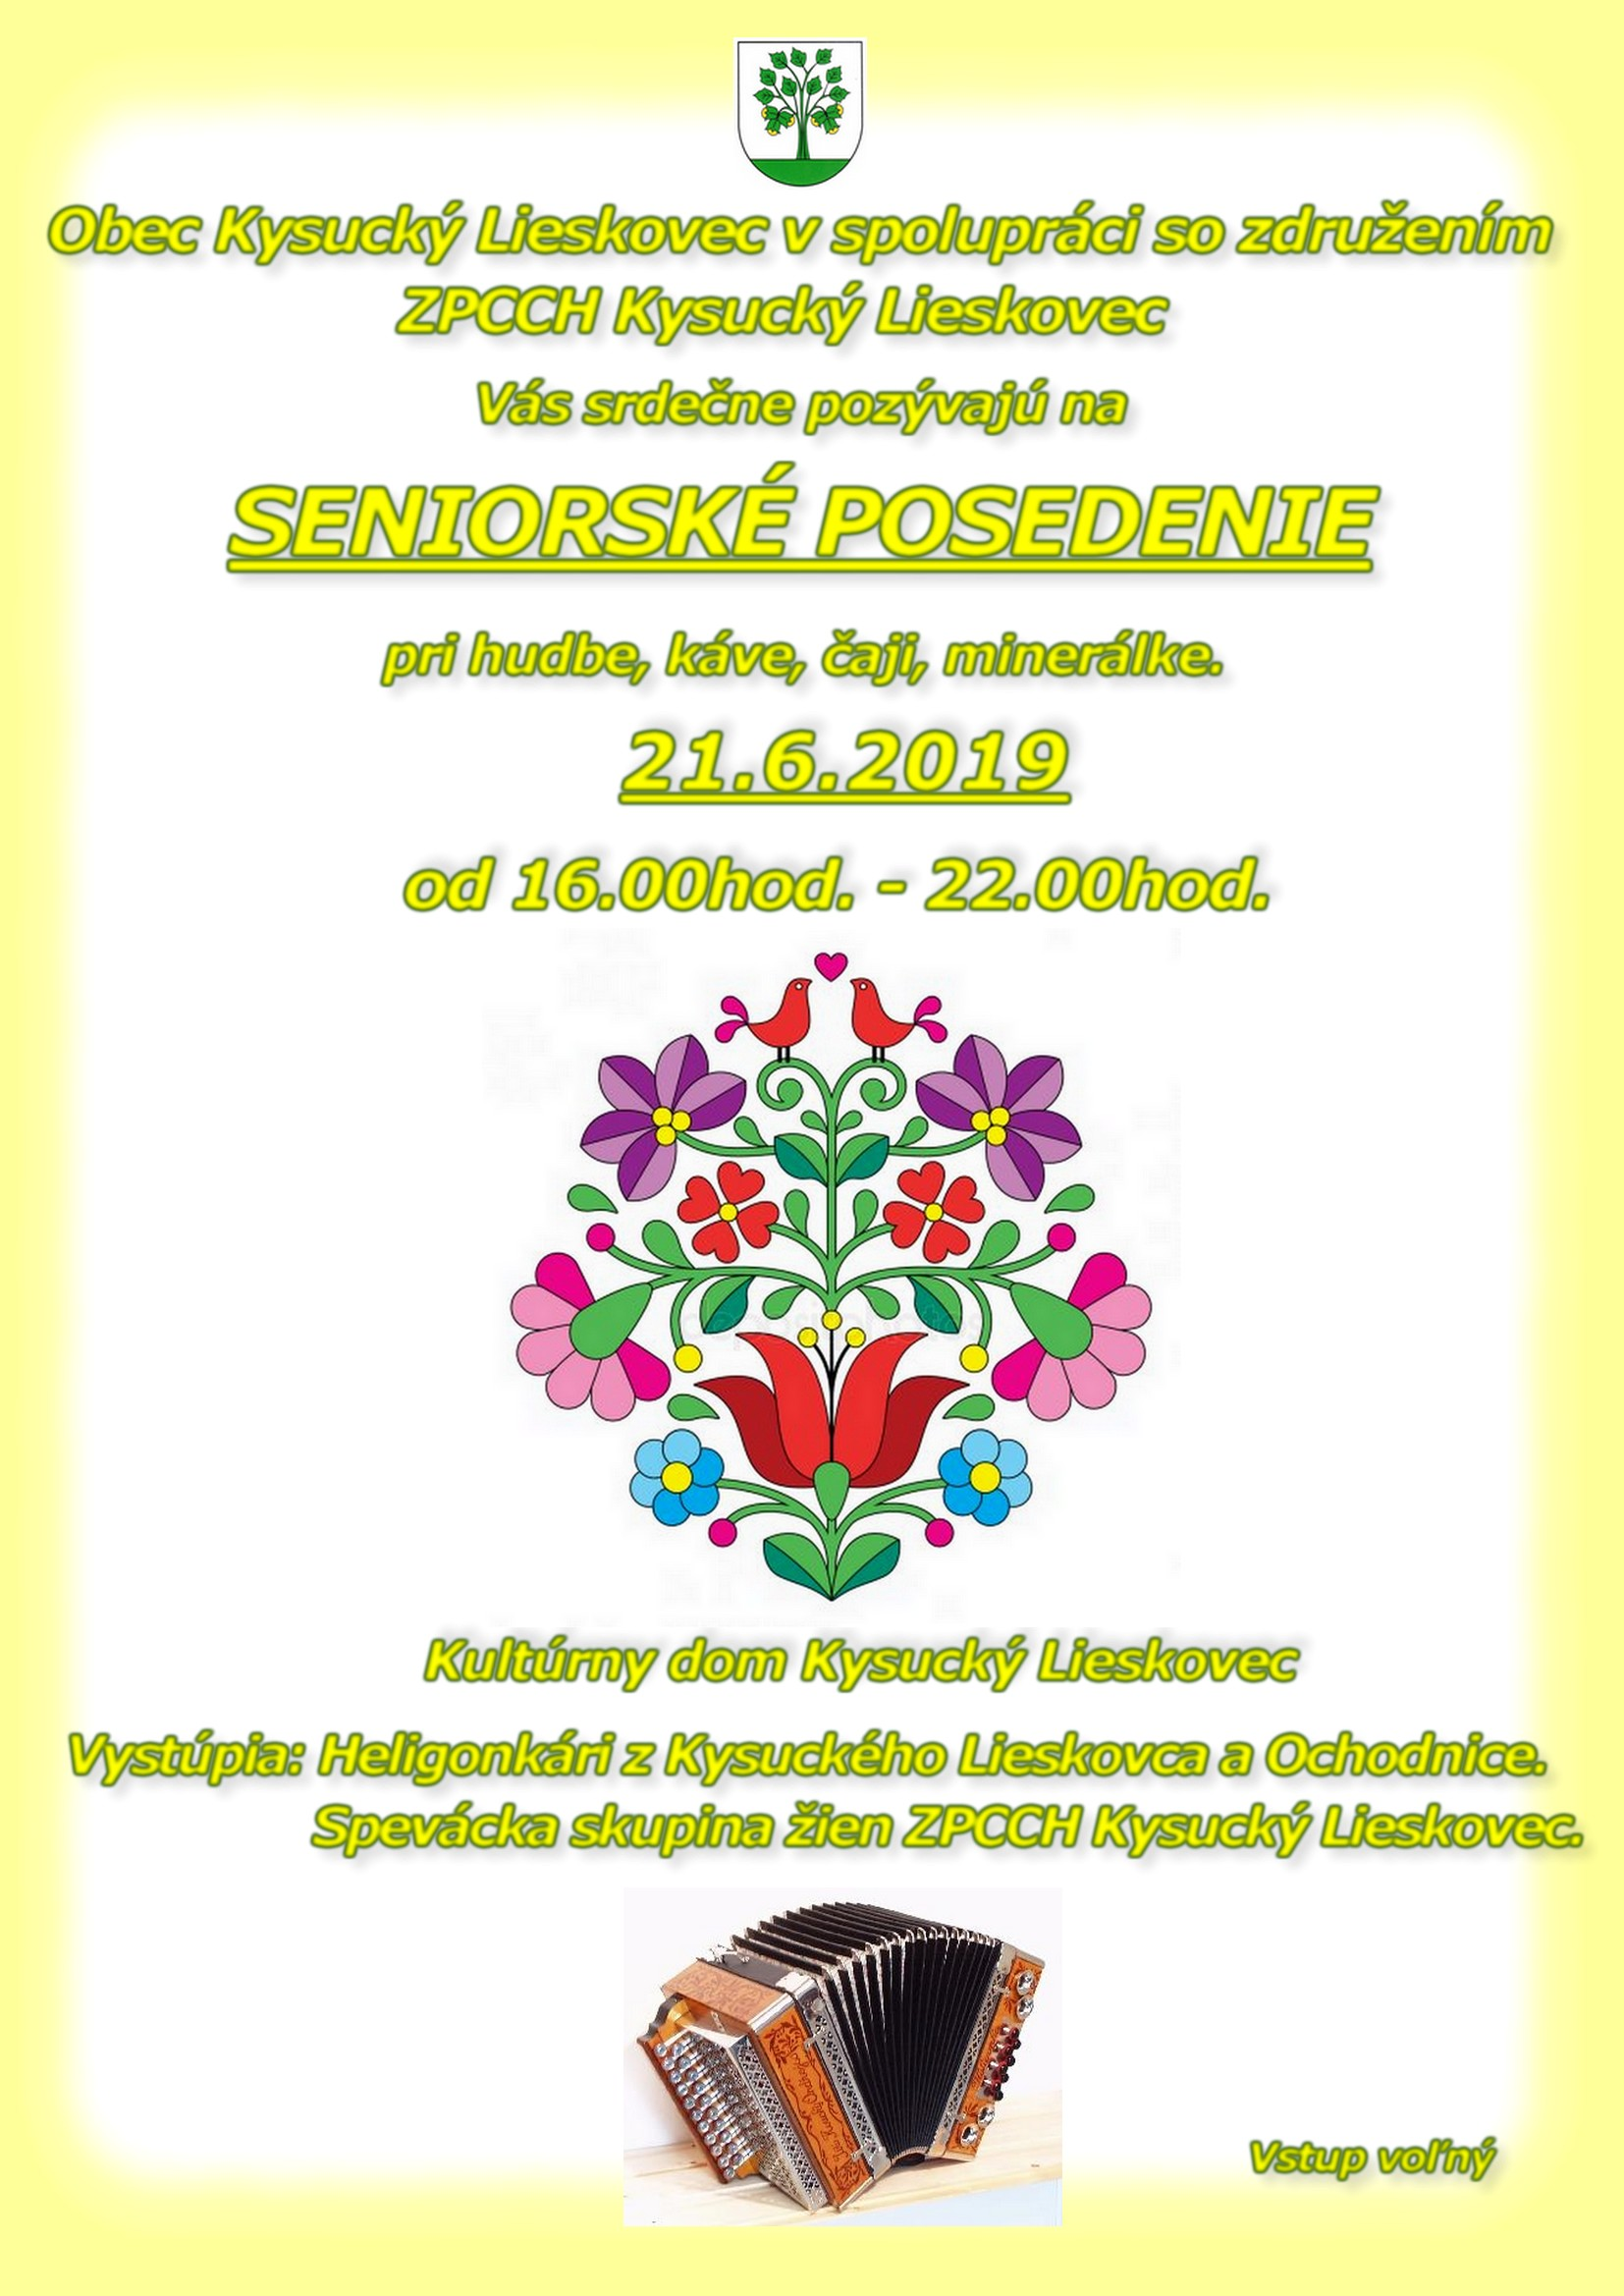 The village of Kysucky Lieskovec in cooperation with the association ZPCCH Kysucky Lieskovec invite you to the SENIOR ASSEMBLY 21.6.2019 from 16:00 - 22:00.